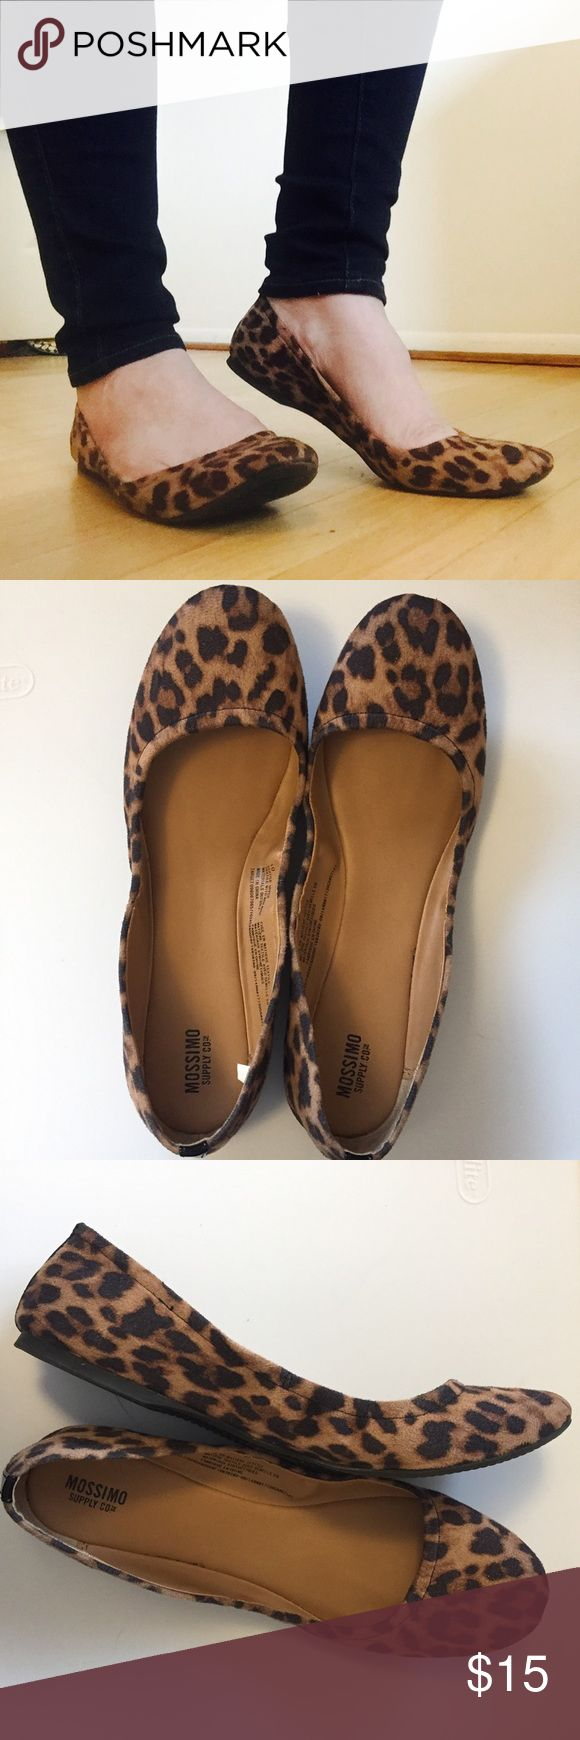 Mossimo | Leopard Print Ballet Flat Massimo Leopard Print Ballet Flats. Have a scrunchy style. Worn a couple times but no flaws. Fits true to size. Amazing as a closet neutral these can go with anything! Fit true to size. Mossimo Supply Co. Shoes Flats & Loafers